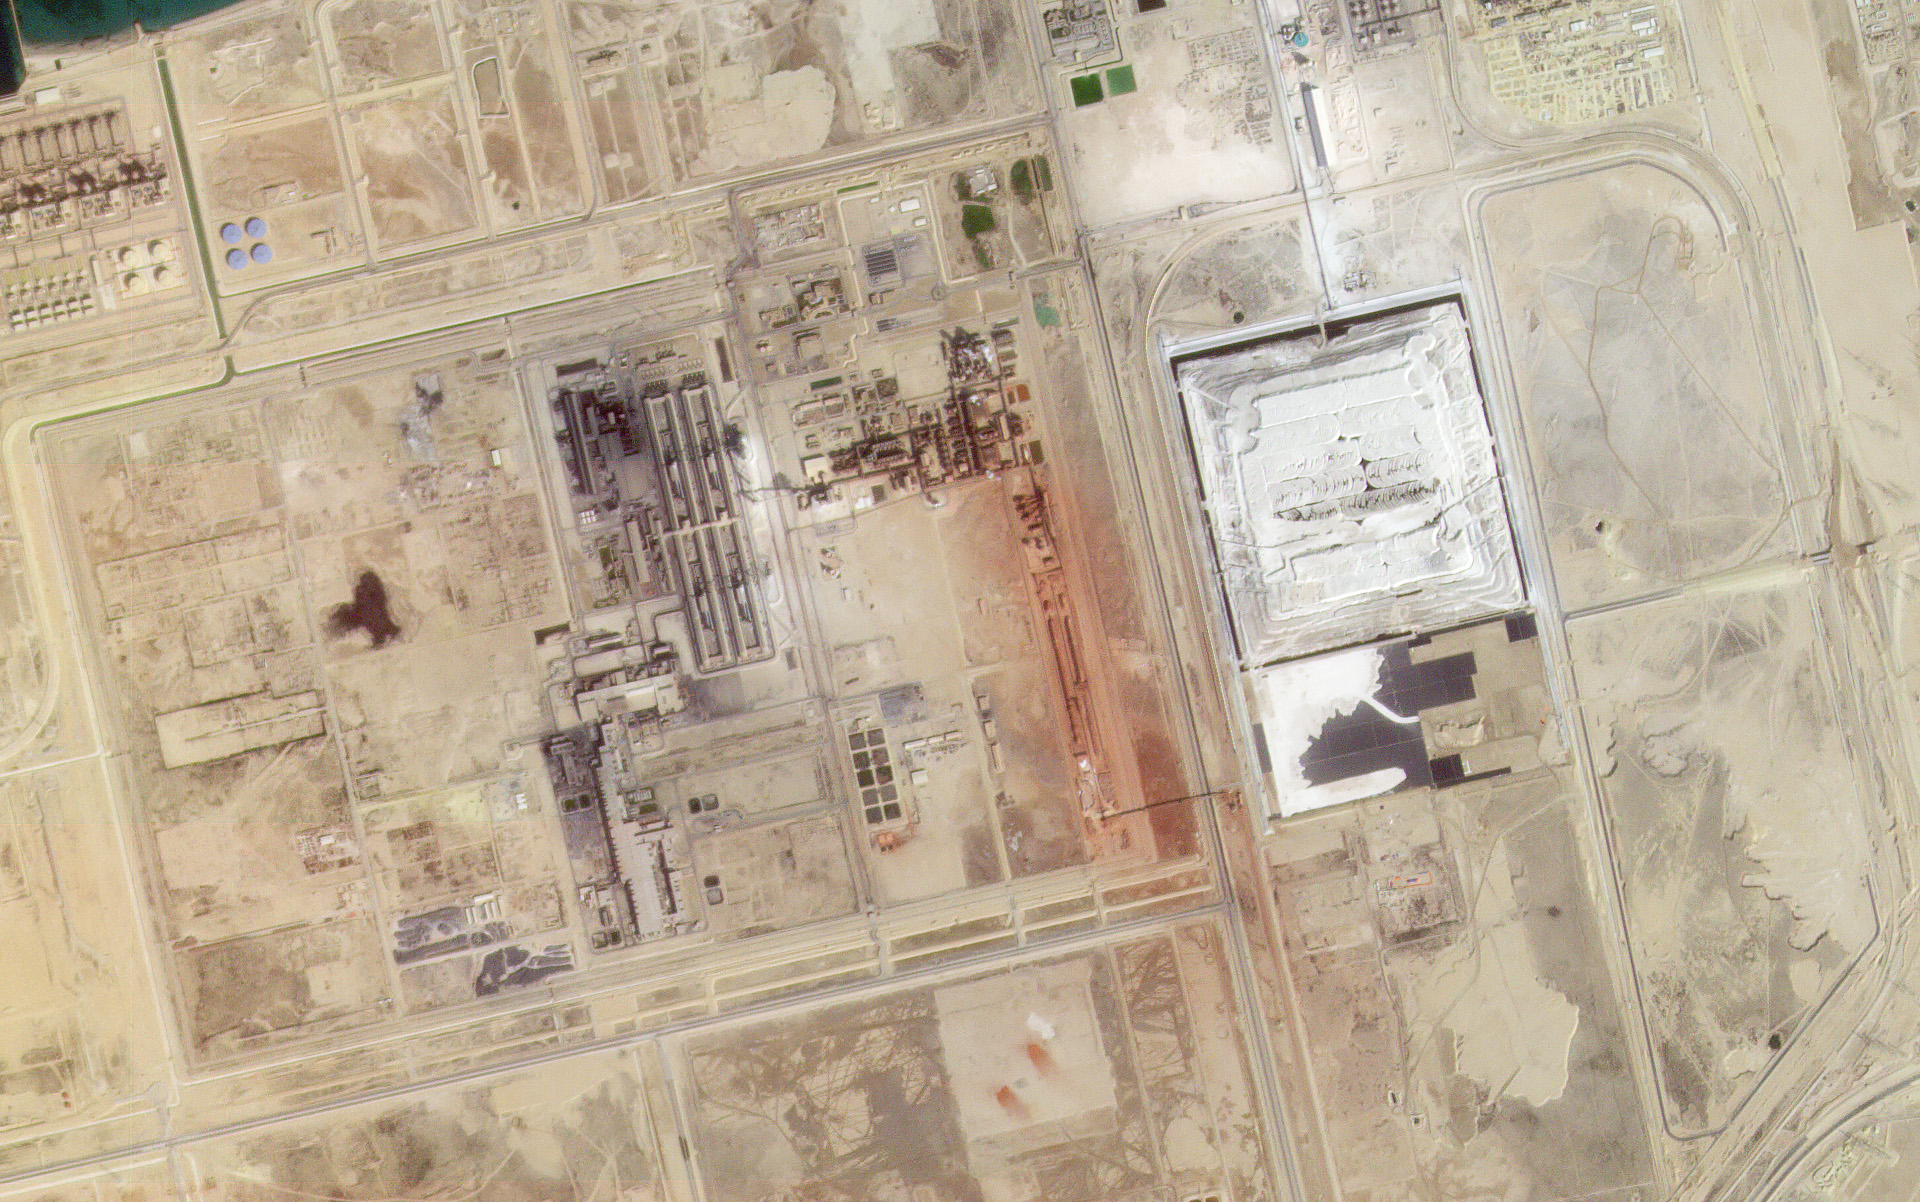 Ras Al Khair, Saudi Arabia collected on January 27, 2021. © 2021, Planet Labs Inc. All Rights Reserved.